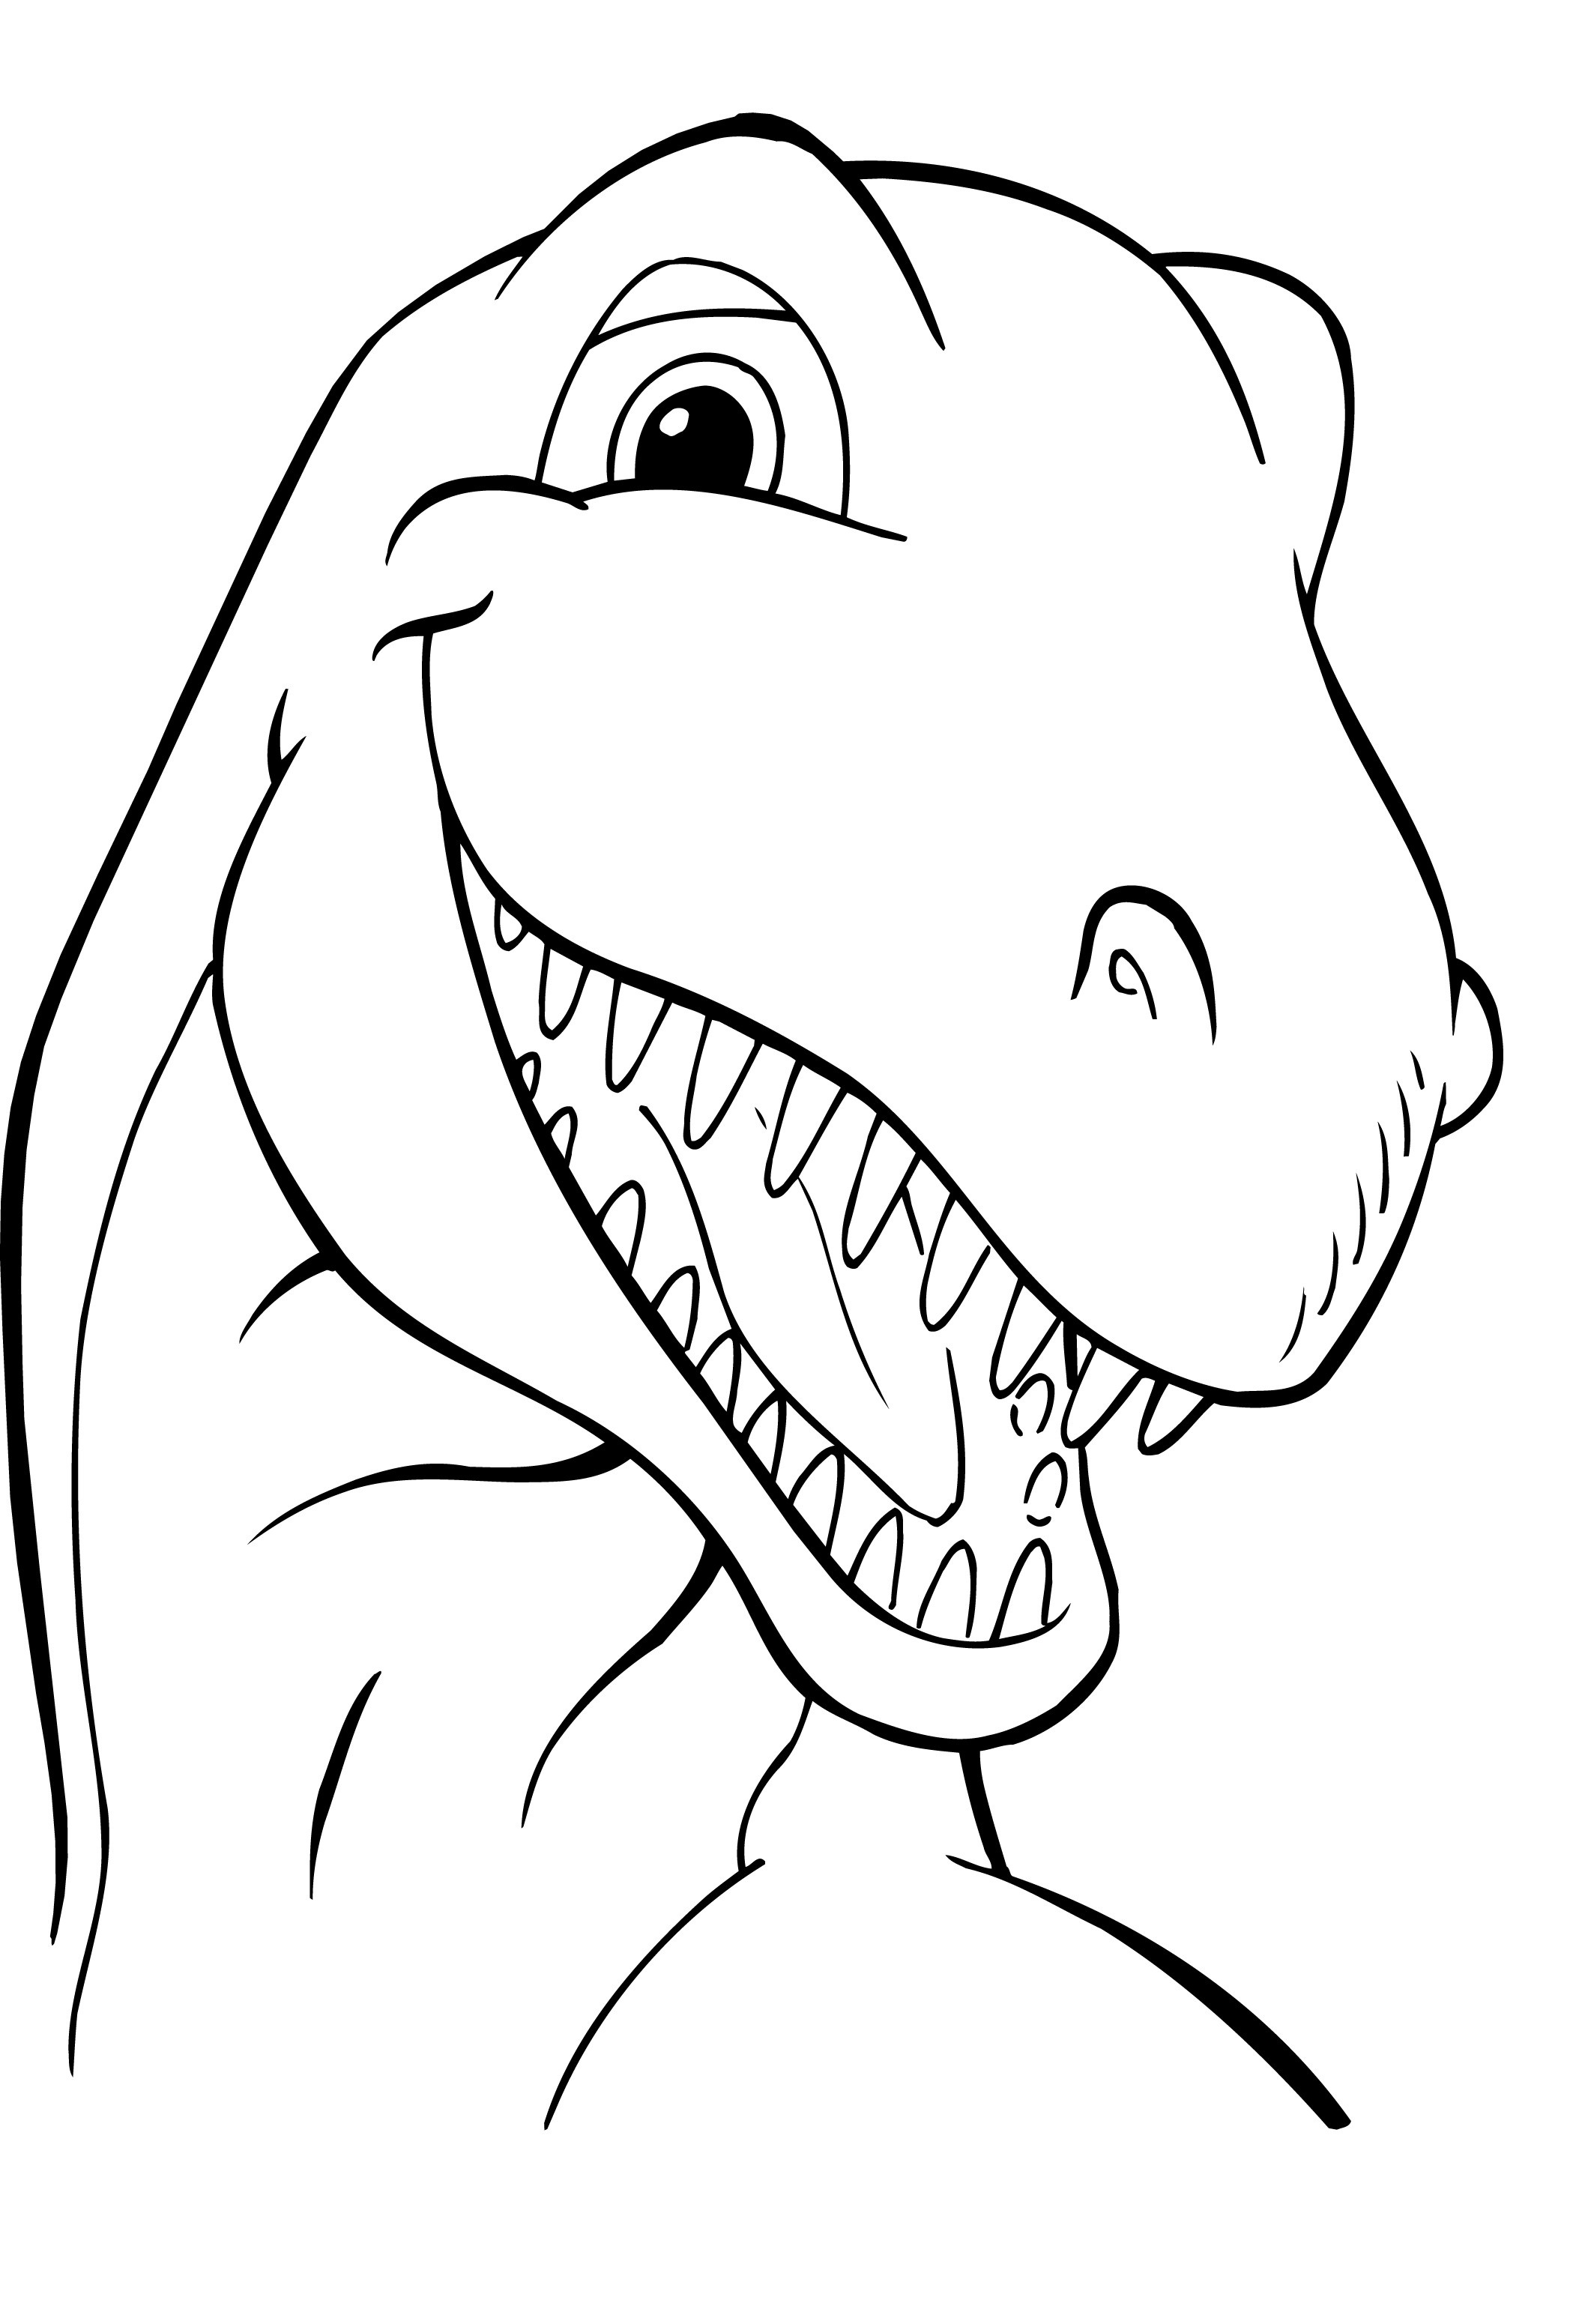 dinosaurs pictures to color dinosaurs for children triceratops dinosaurs kids pictures dinosaurs to color